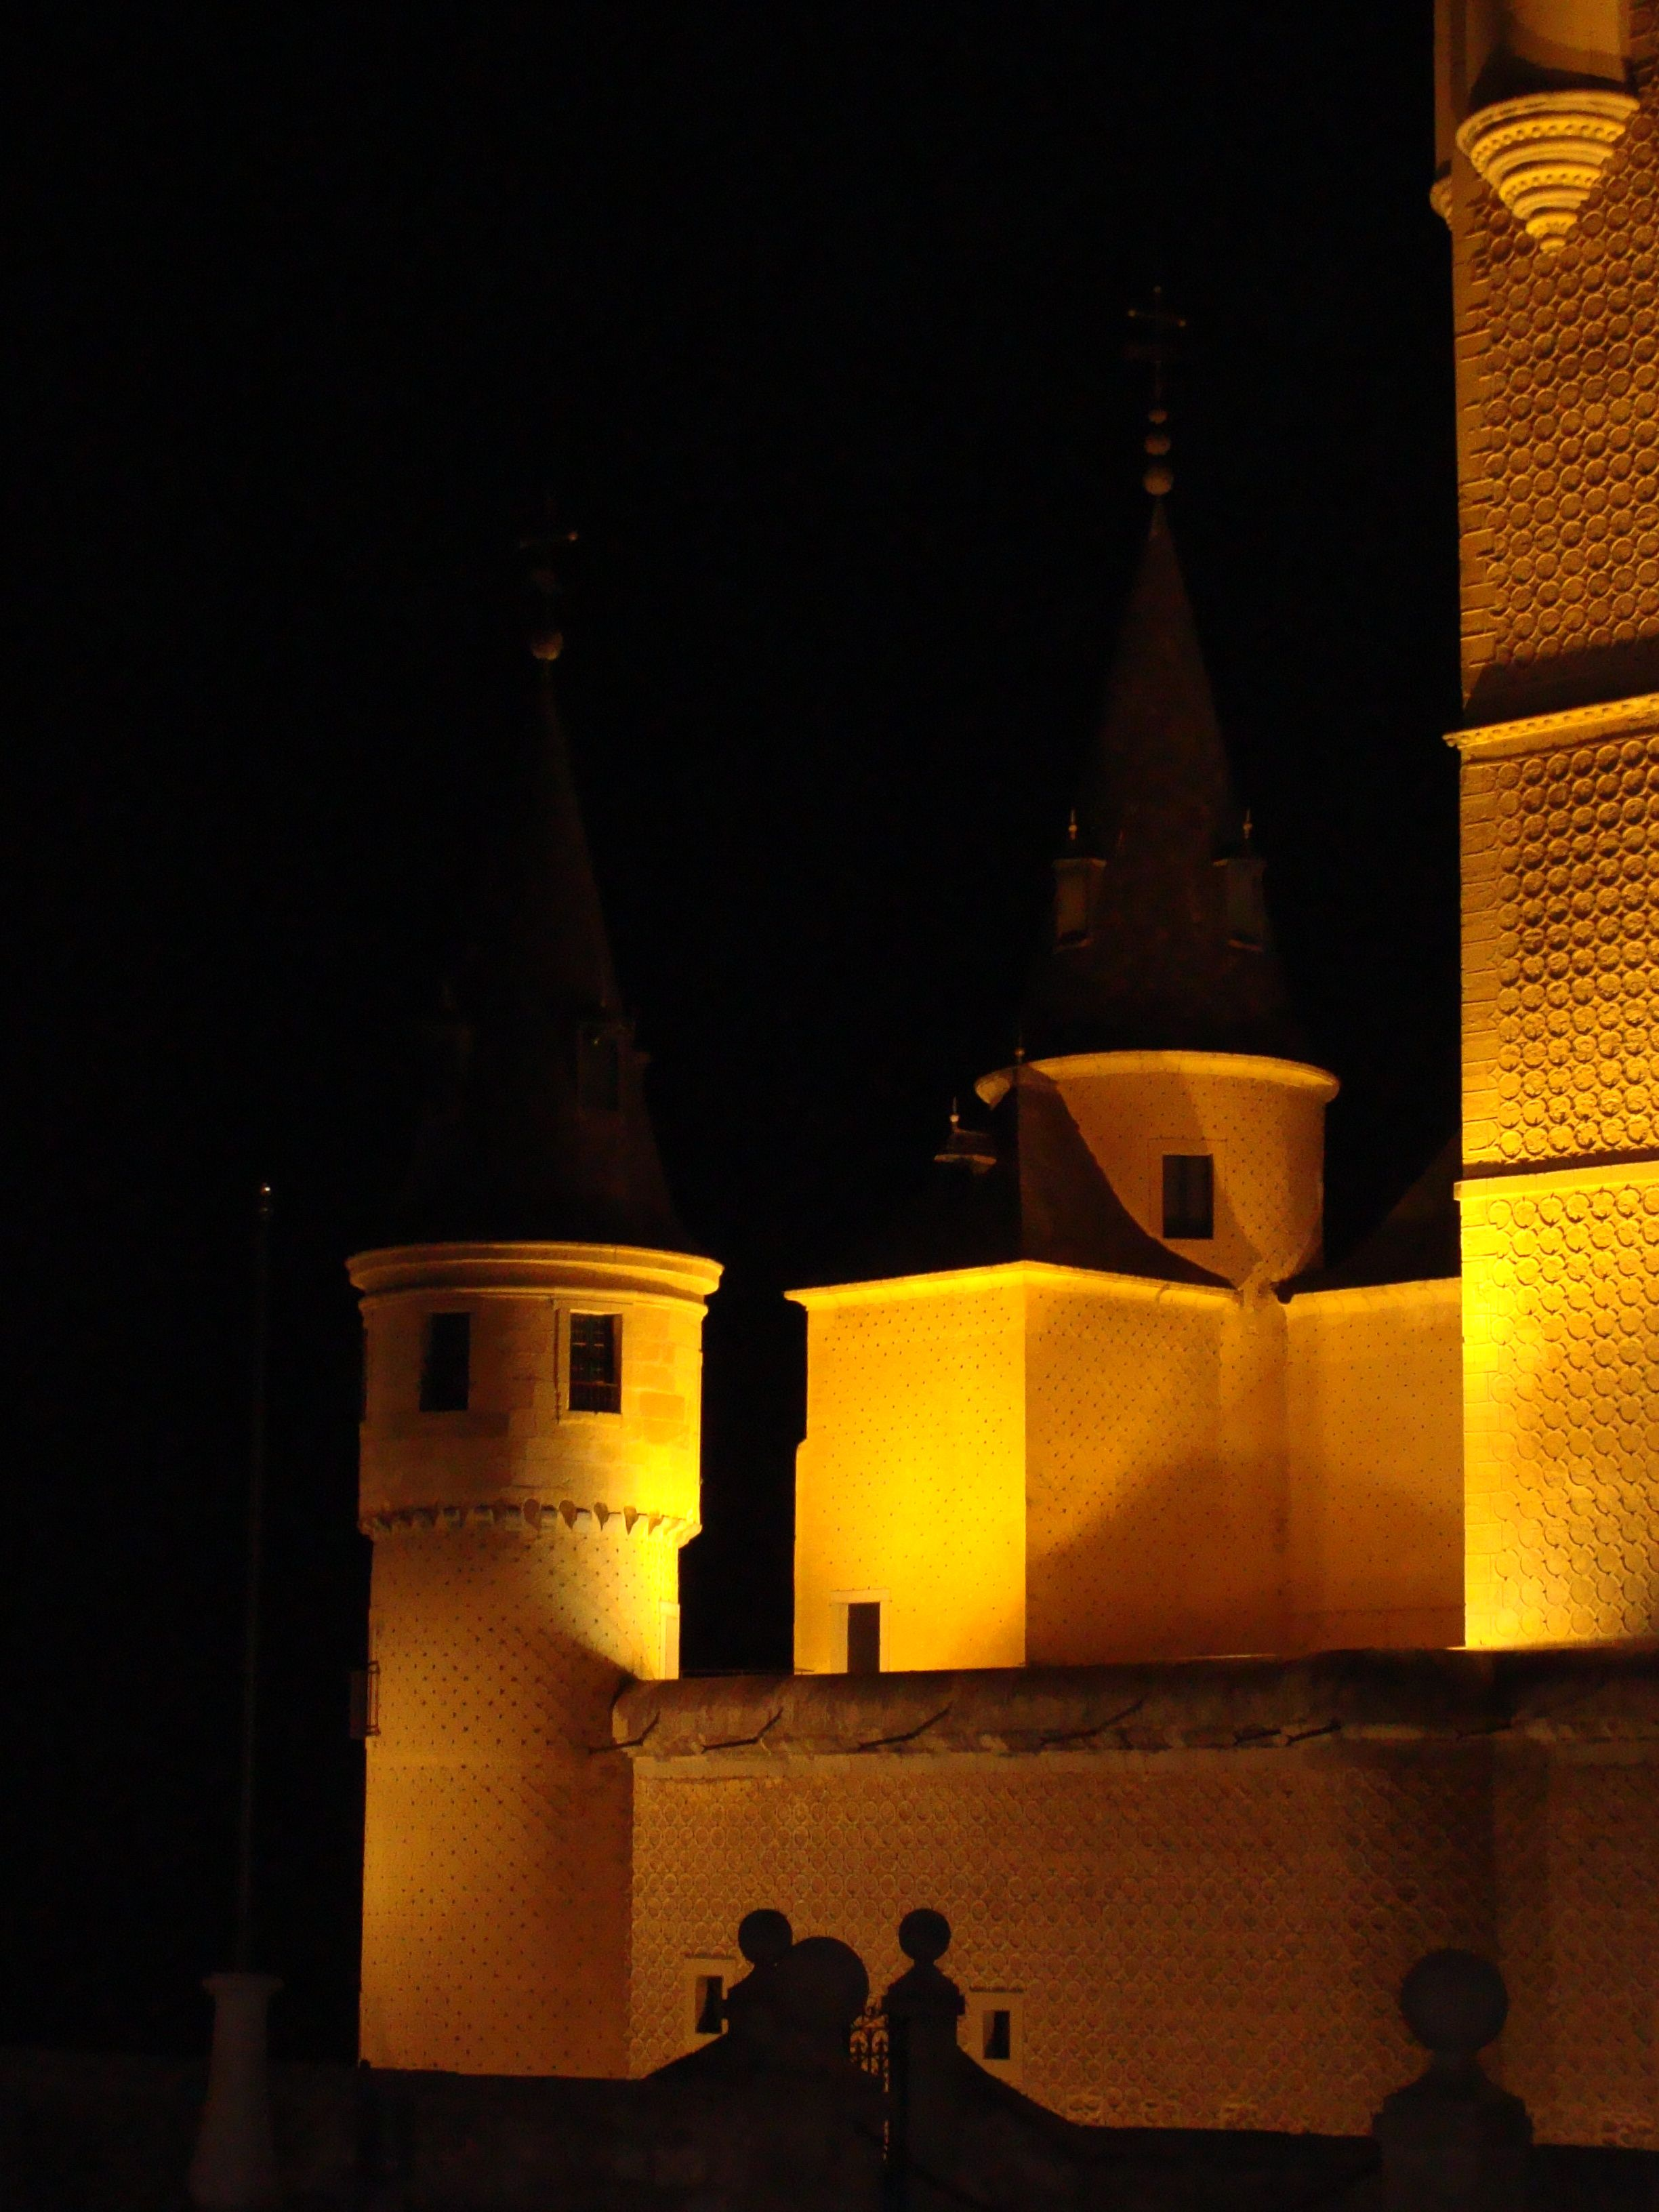 Segovia castle at night.